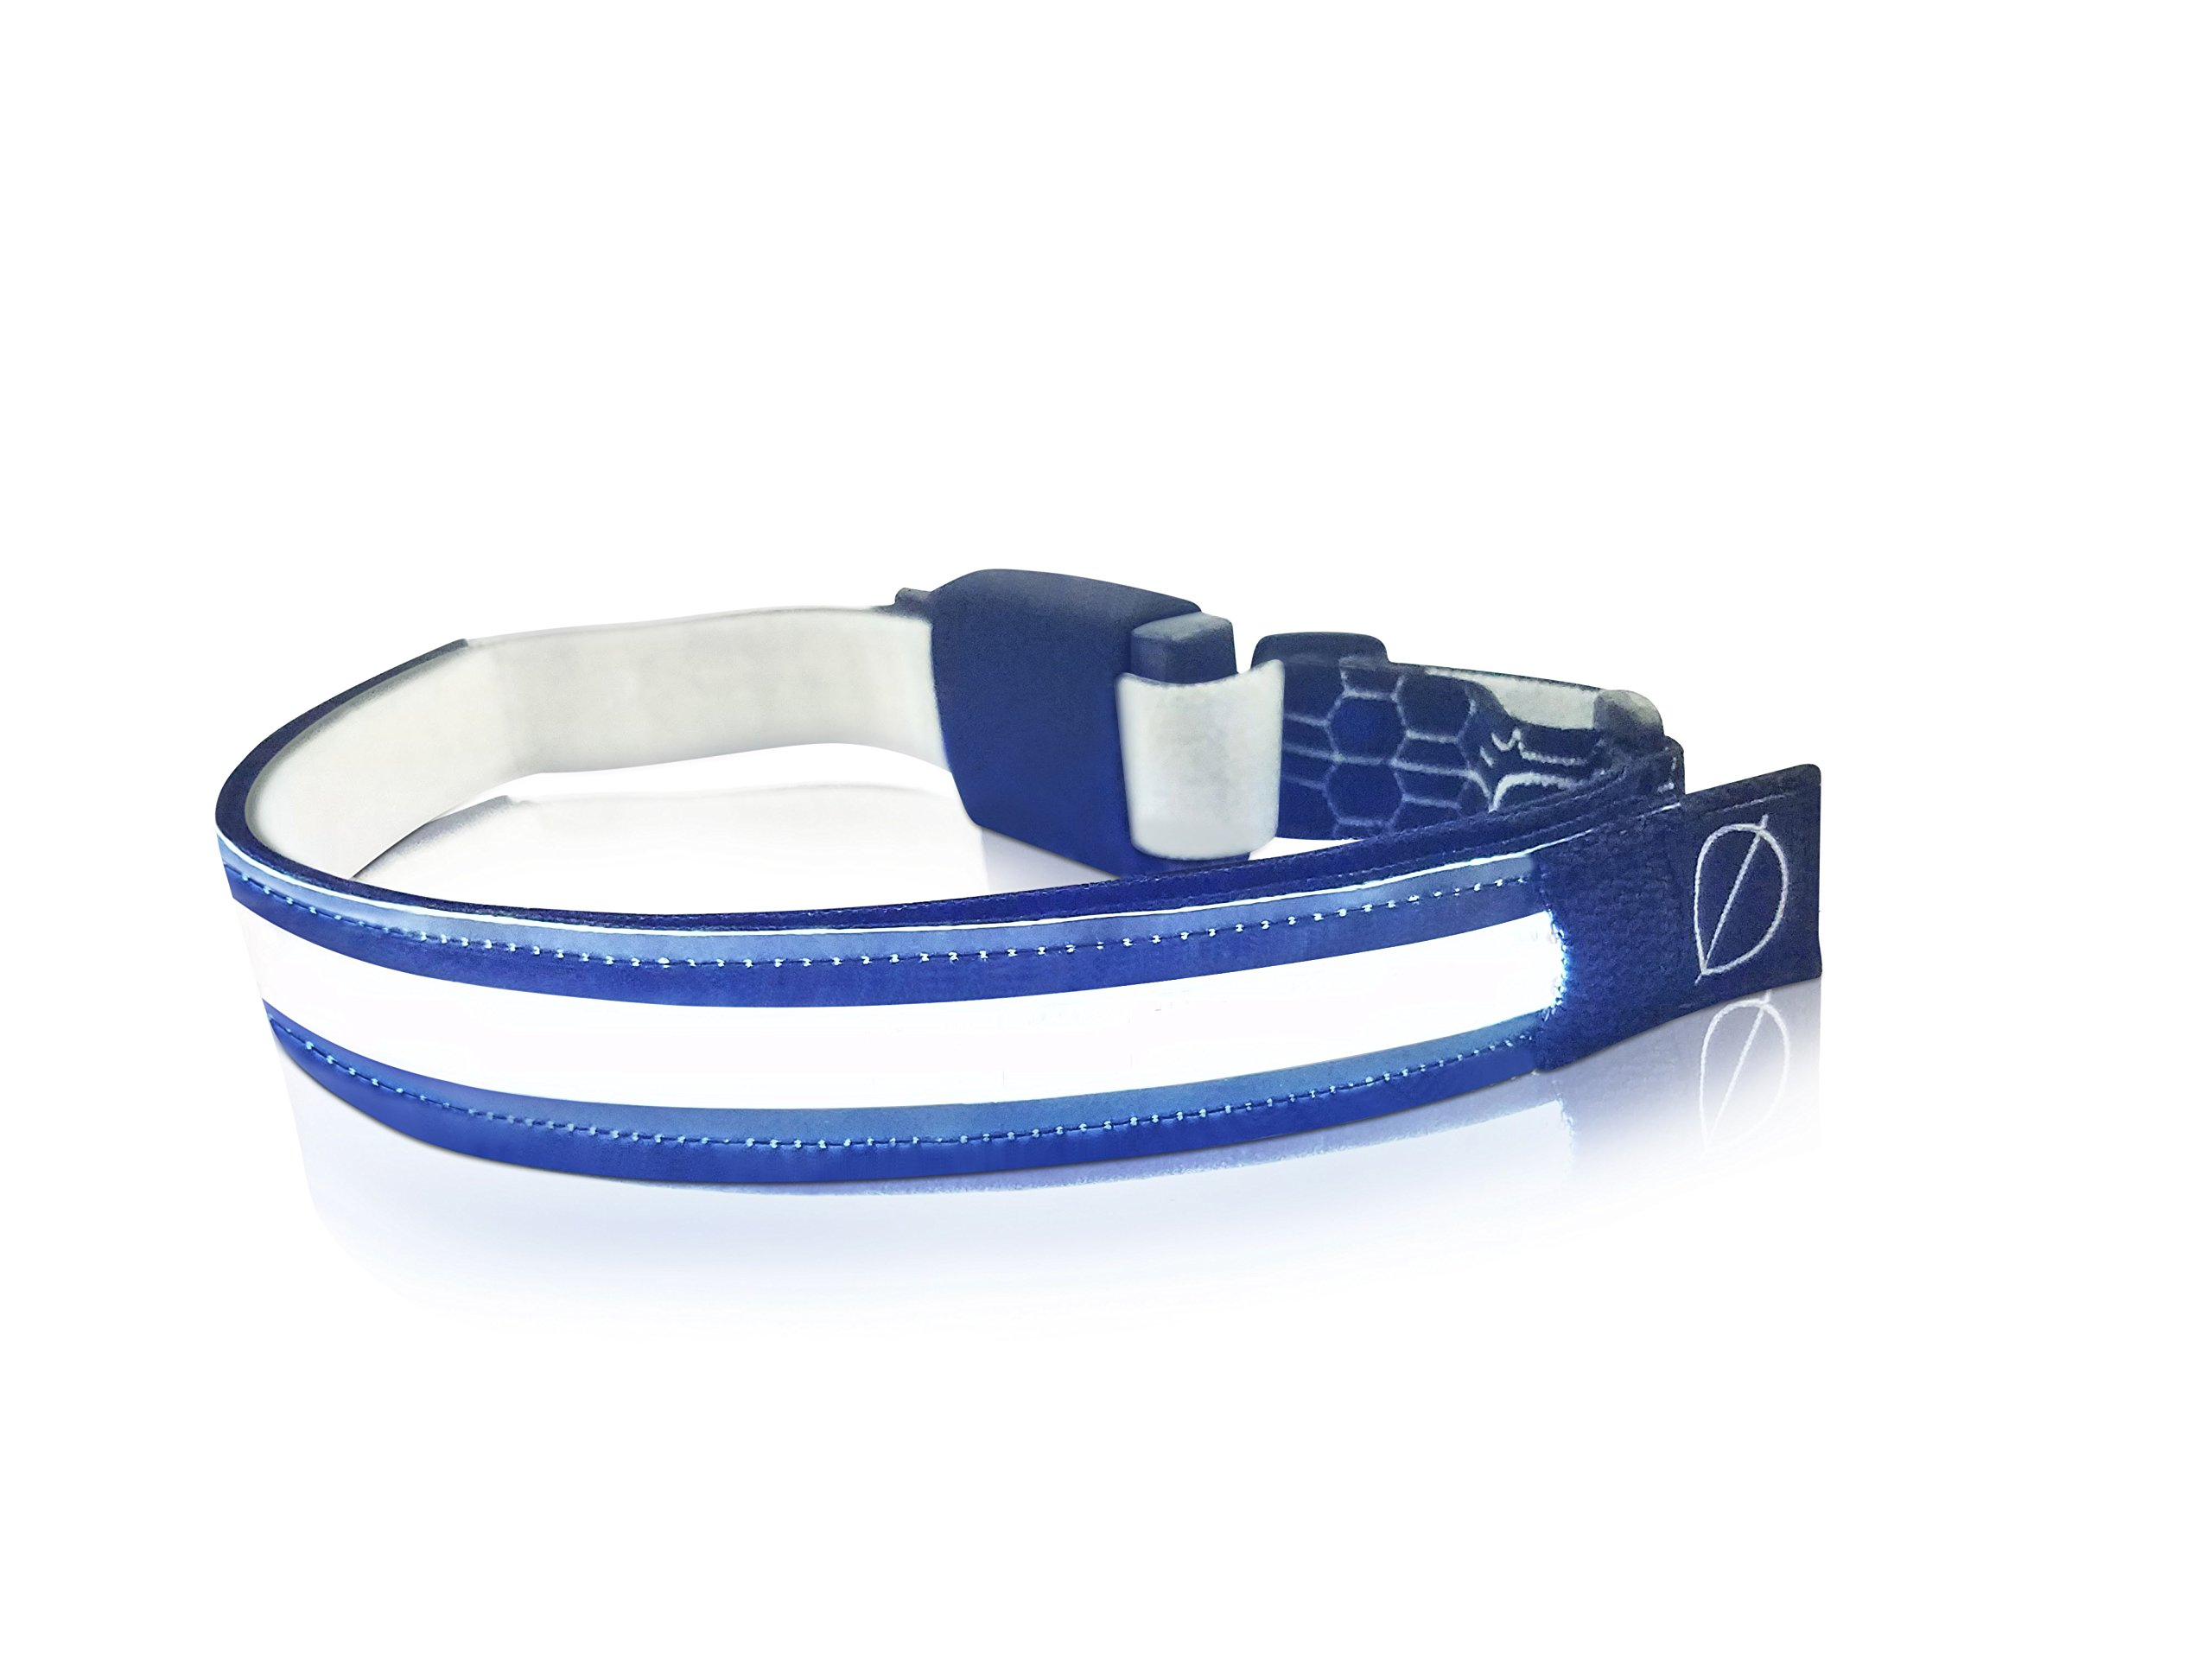 ONE80 Light Headlamp - Rechargeable LED 180° Headlight - Full Peripheral Illumination - transforms Your Camping, Hiking, Running, Outdoor Recreation and Work Experience (2 Battery Packs)